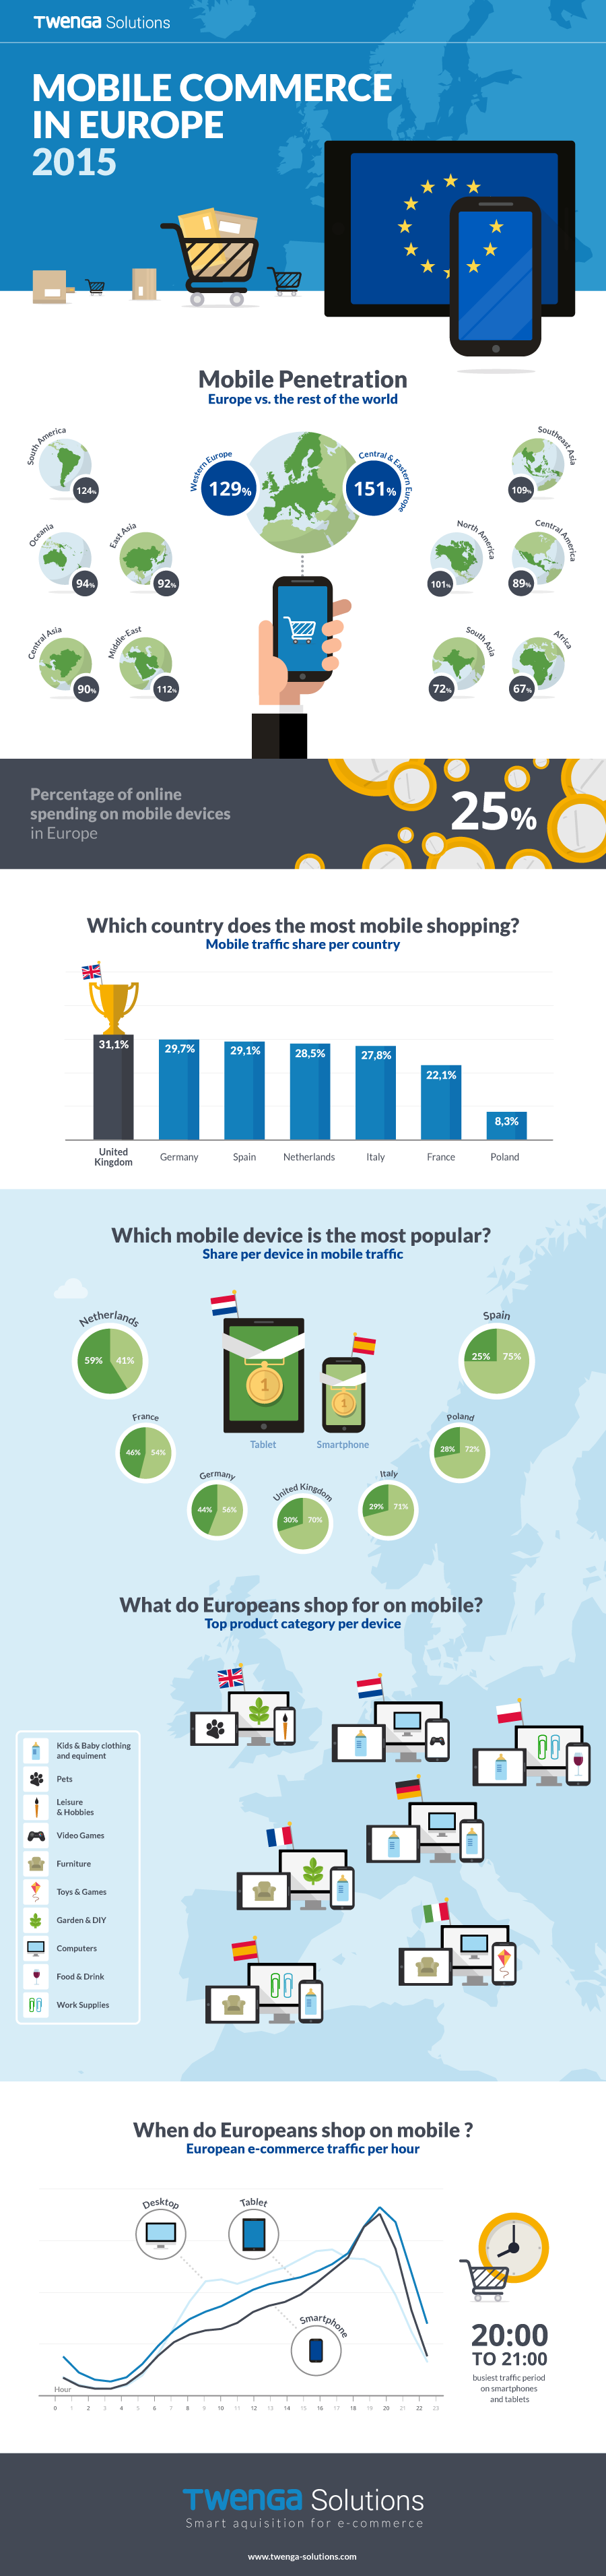 M-Commerce Europe 2015 Study (Twenga)